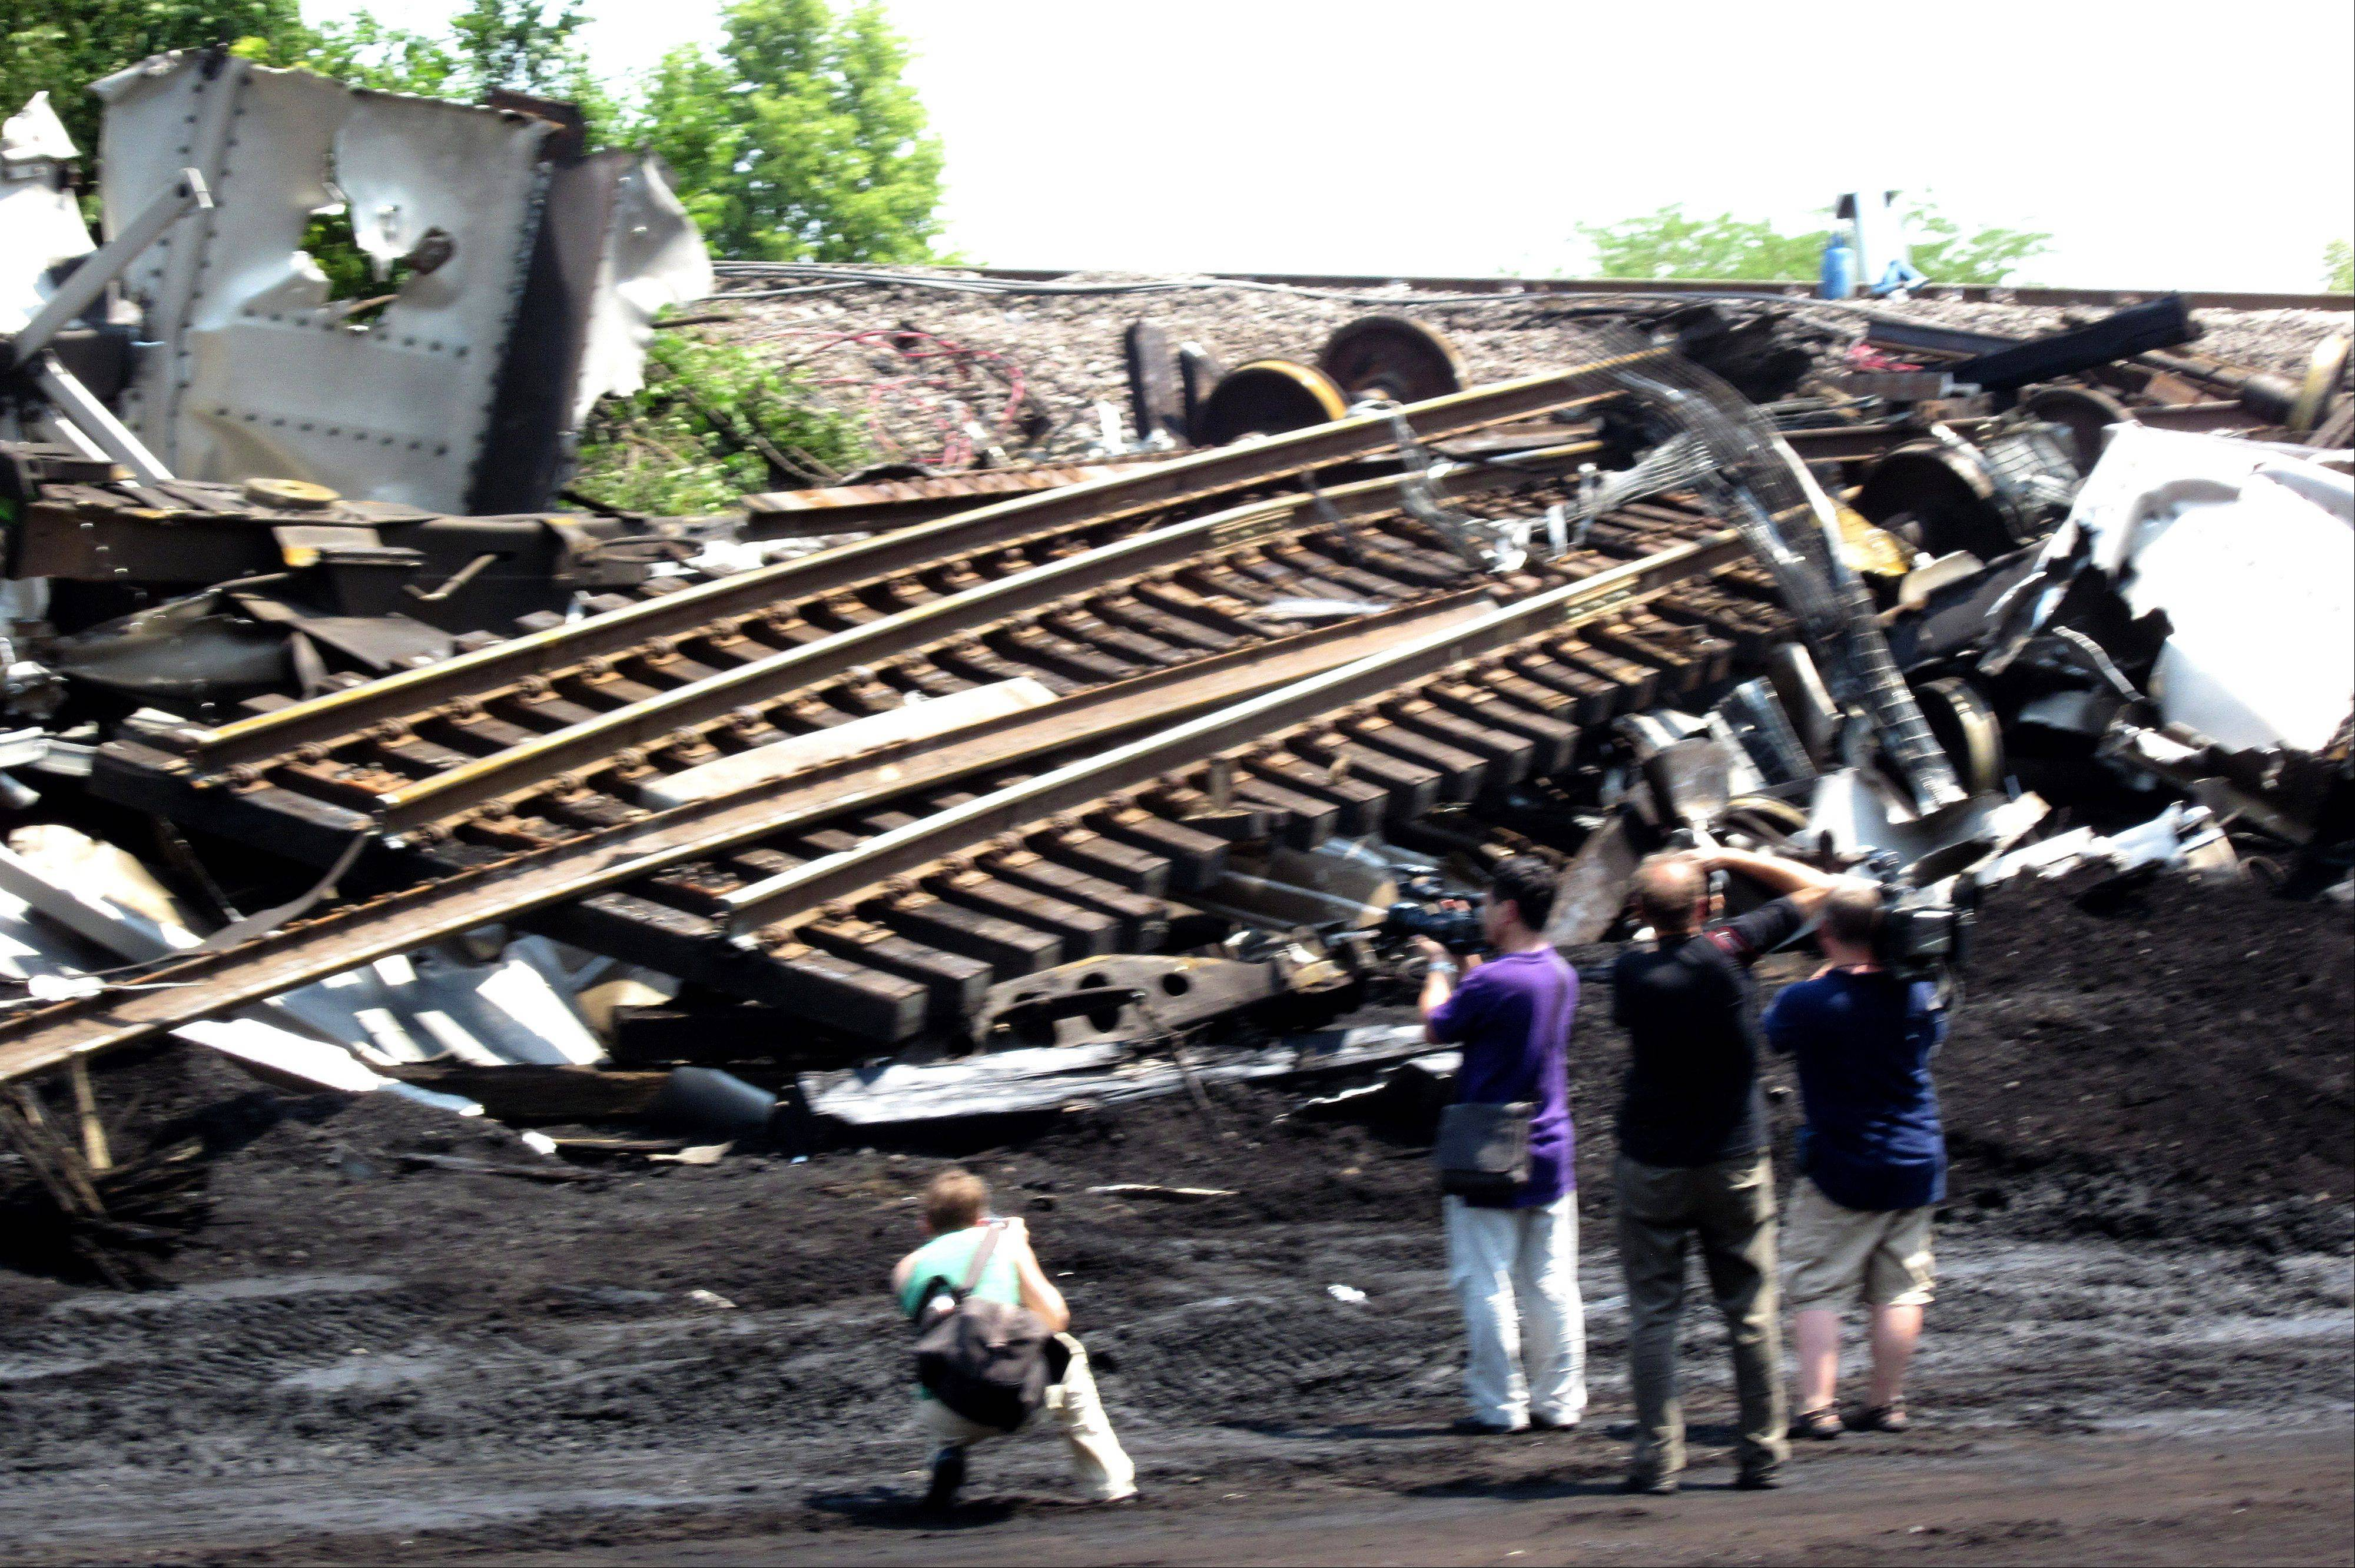 Report: Heat likely cause of fatal Northbrook derailment